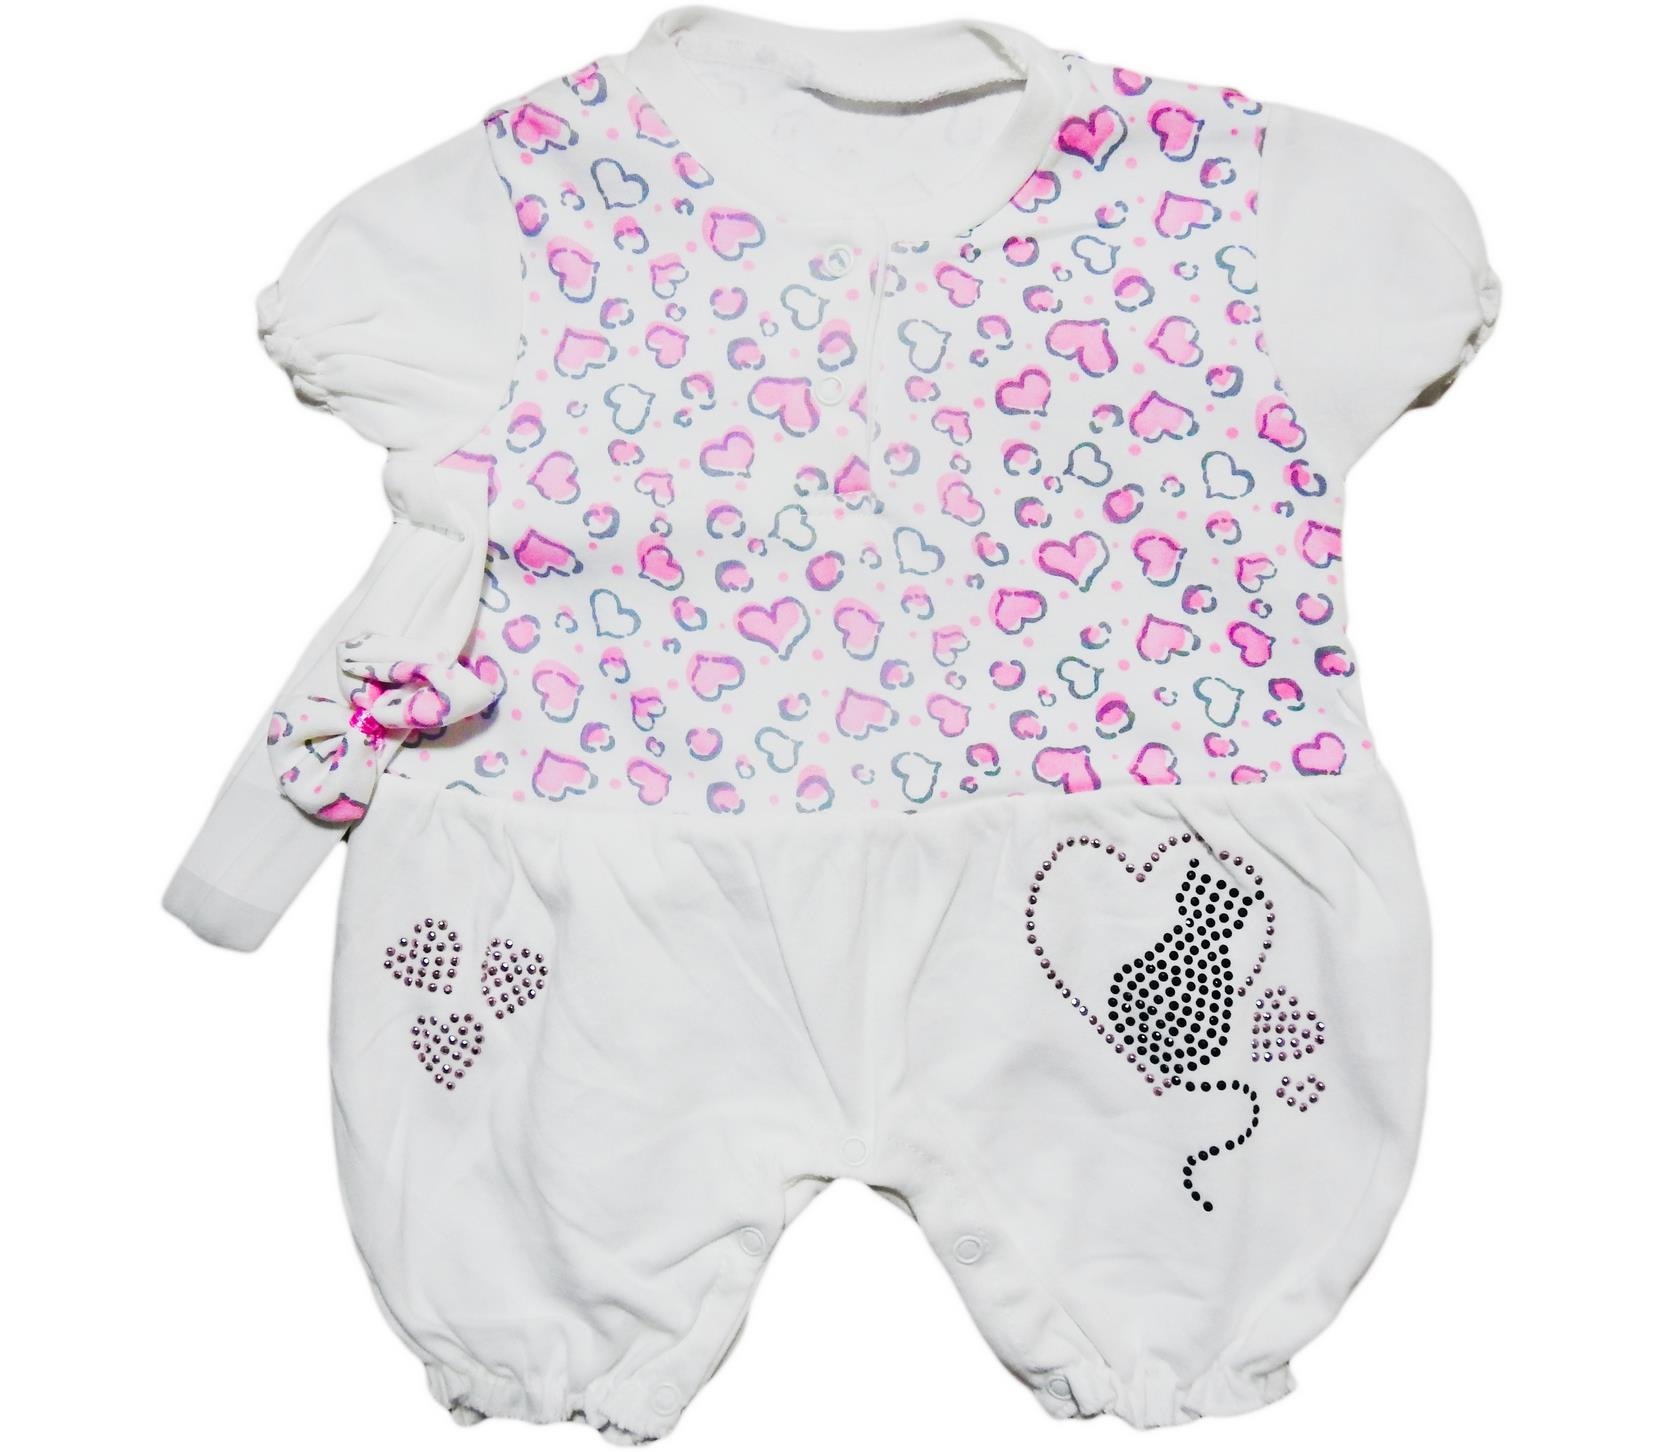 3001 Wholesale baby onesies,jumpsuits, summer hat,print ladybug for kids in 3-6-9-12 months